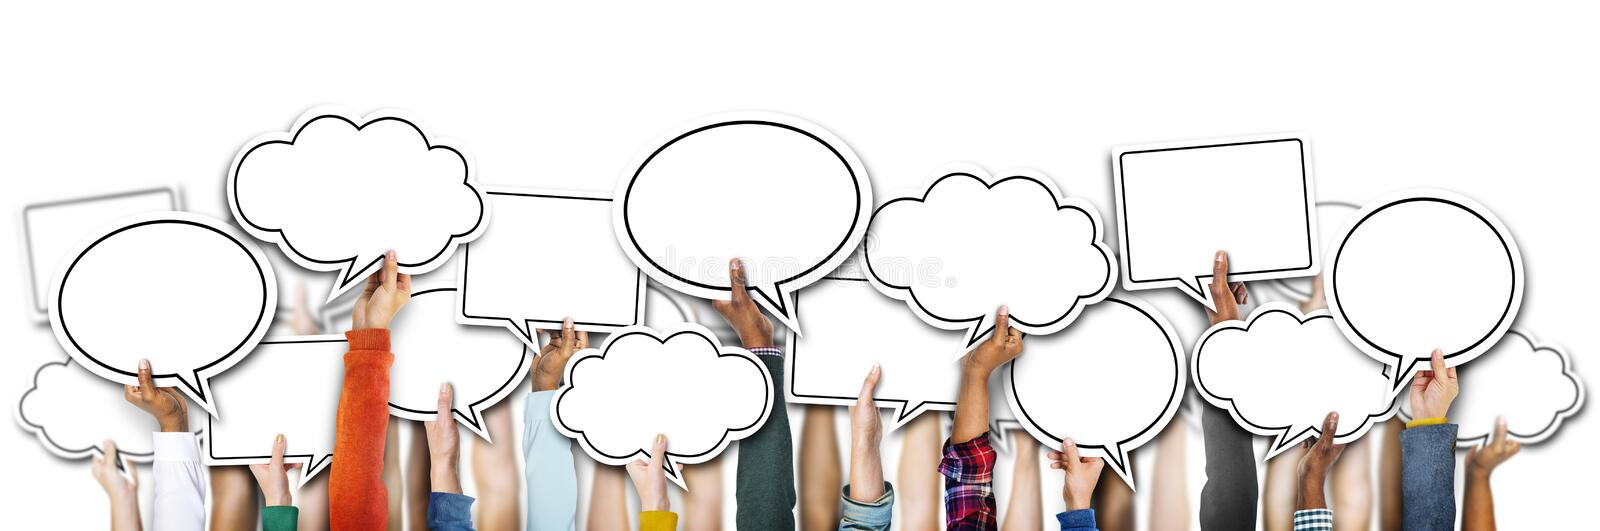 Group of Hands Holding Speech Bubbles royalty free stock image